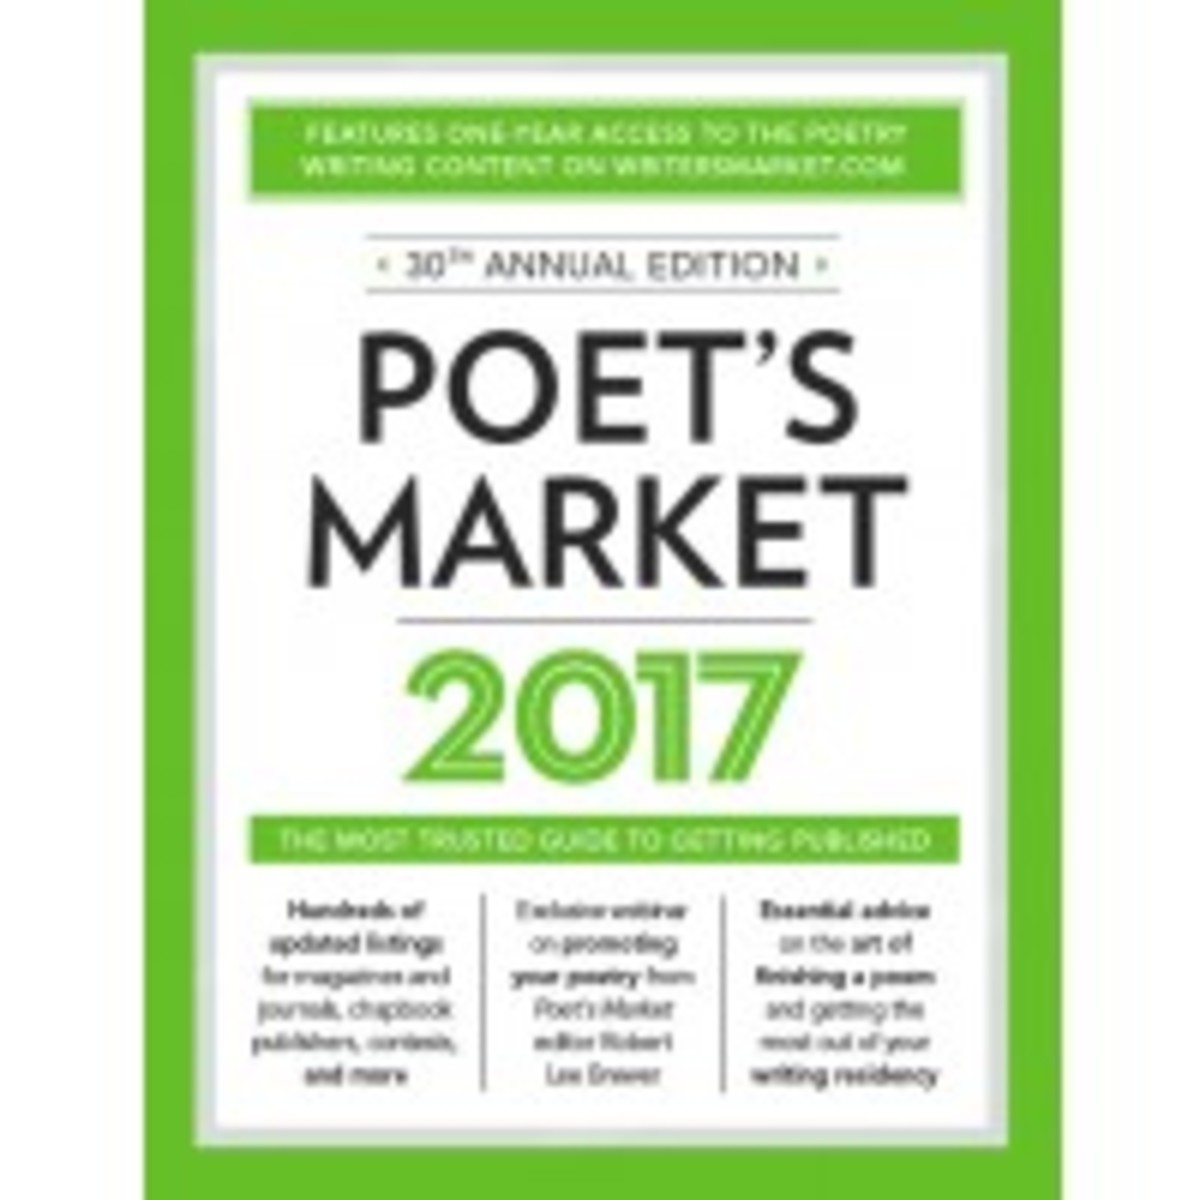 poets_market_robert_lee_brewer